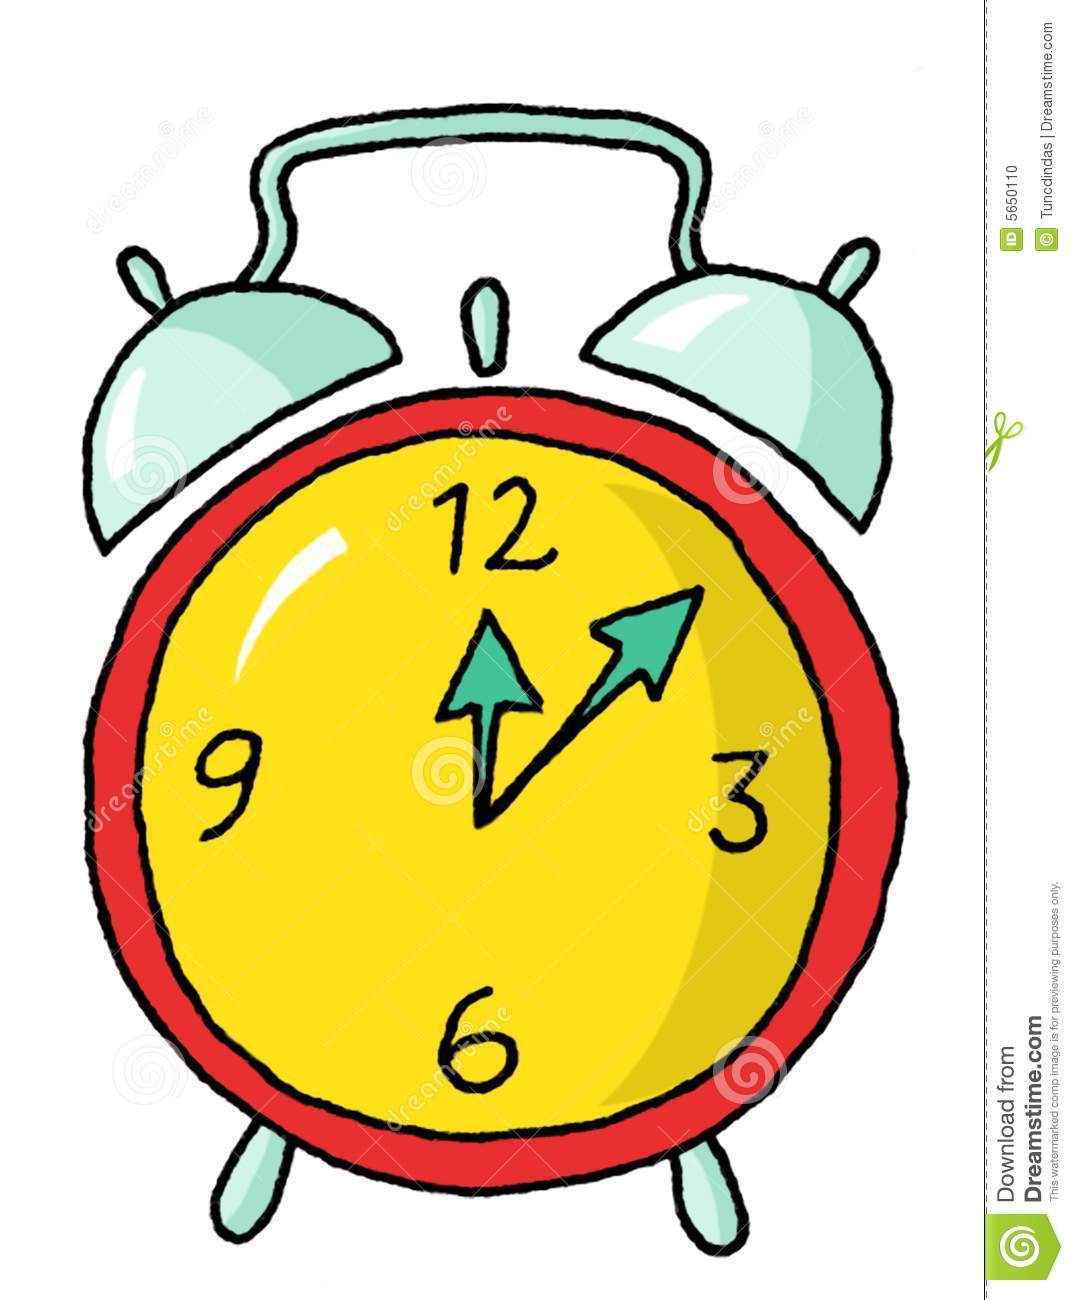 Alarm Clock 01 Stock Photo .-Alarm Clock 01 Stock Photo .-12